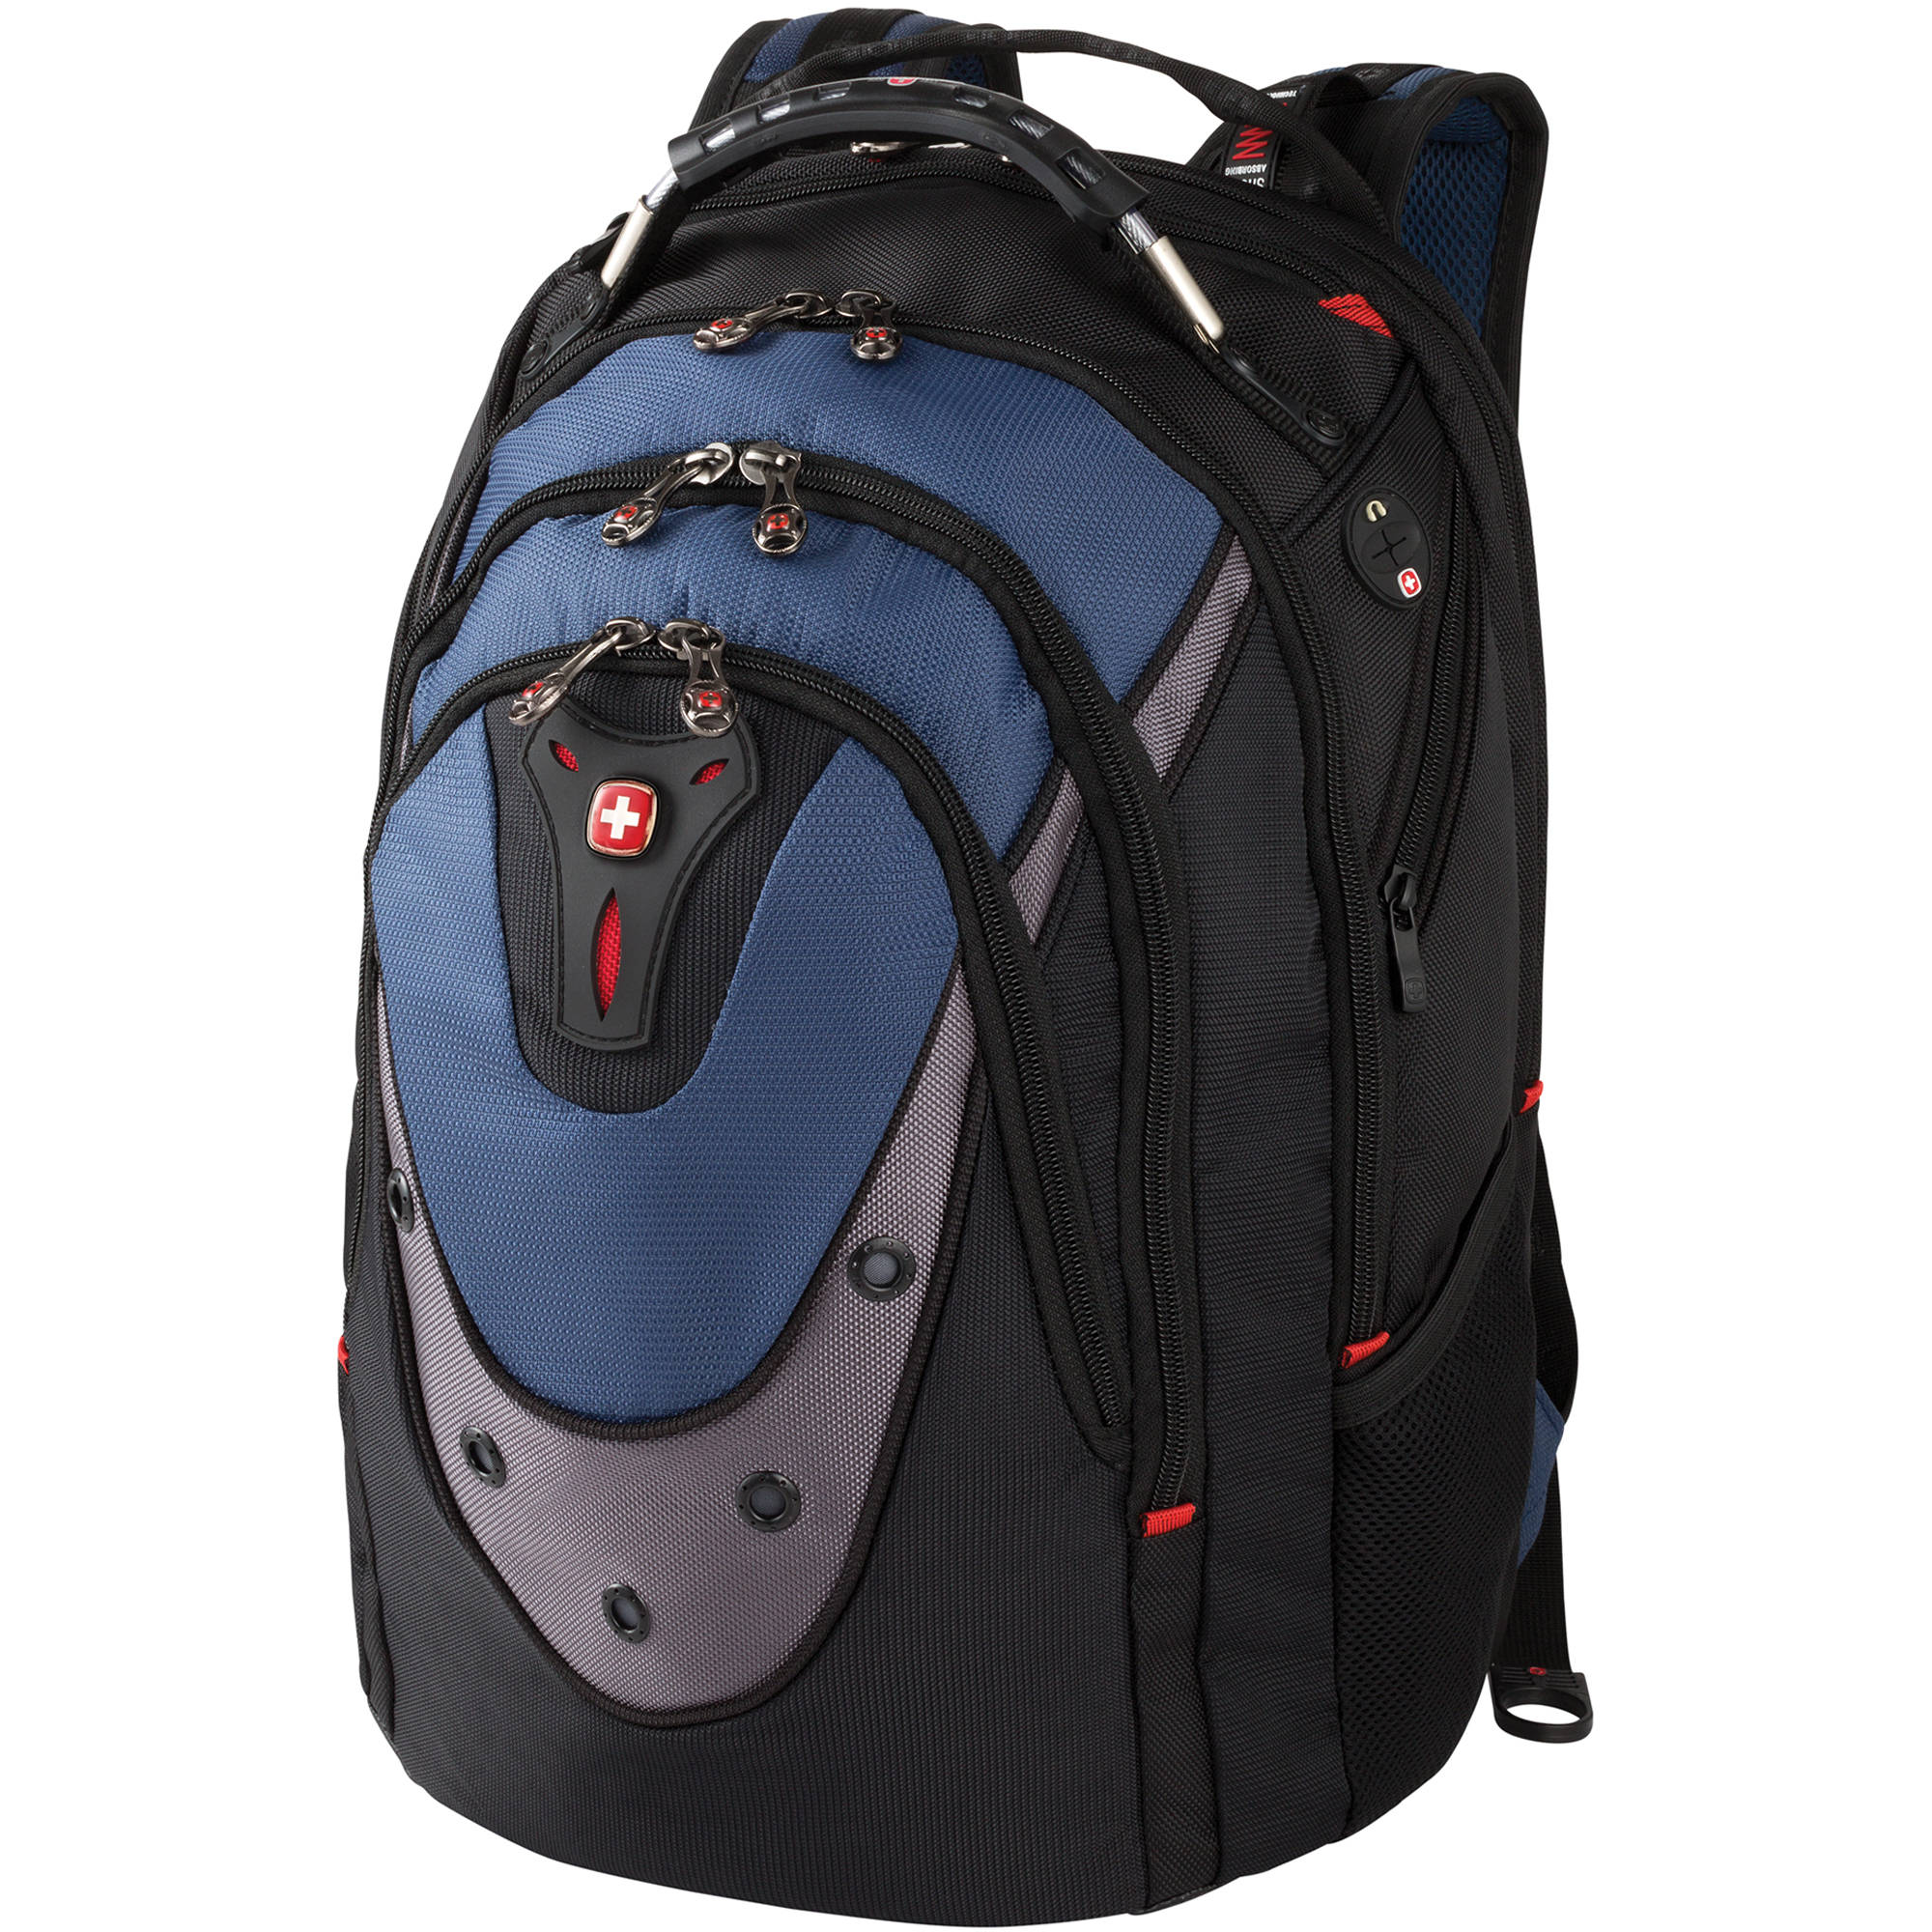 Fake Swiss Gear Backpack - Crazy Backpacks